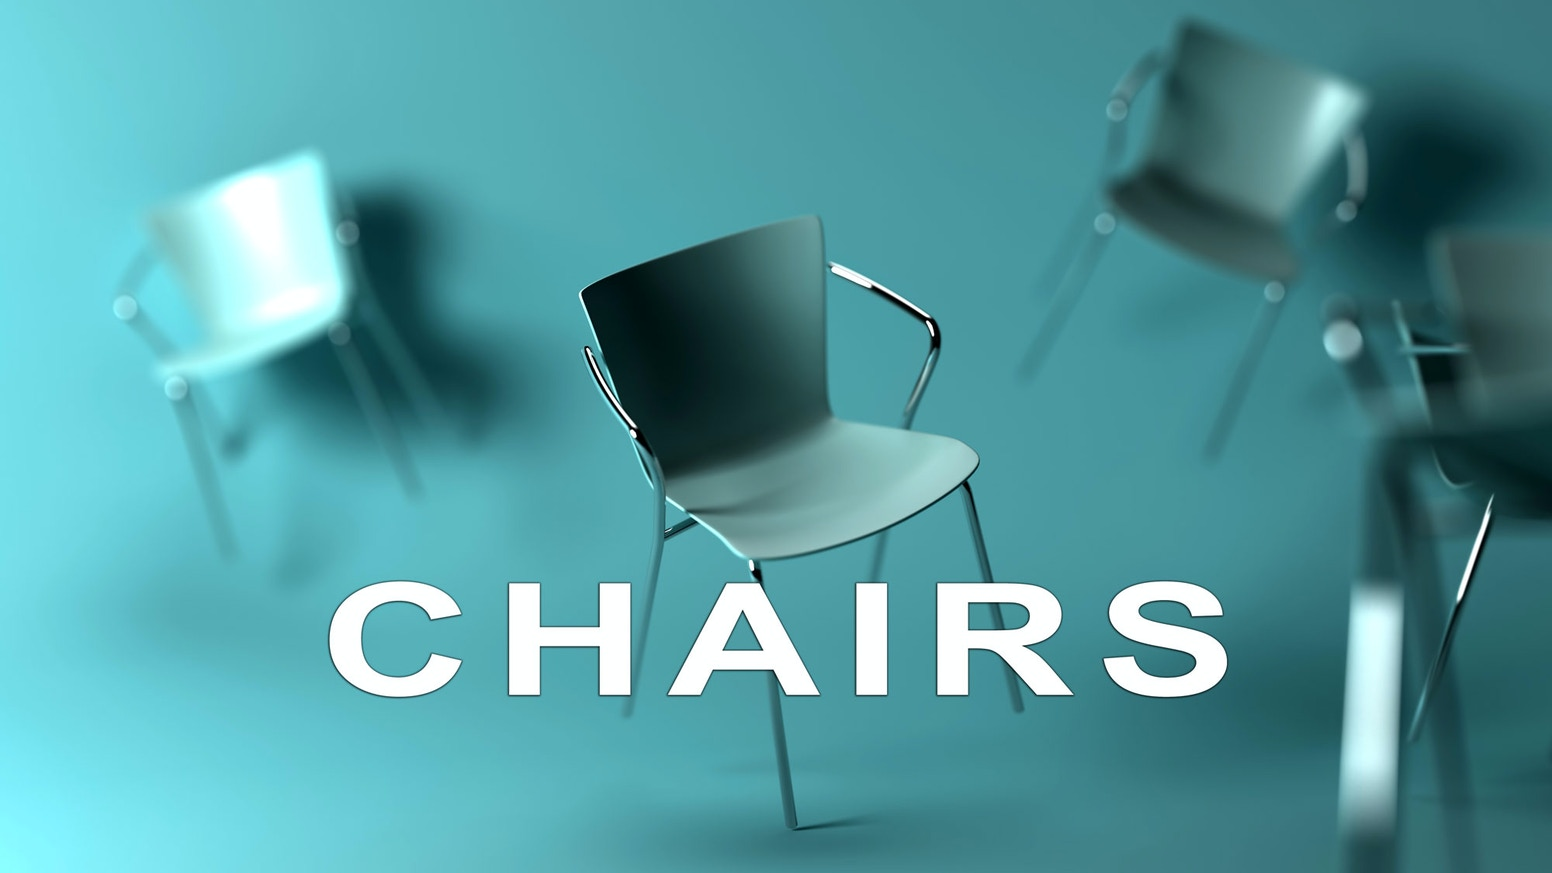 A Comedy About a Man's Peculiar Obsession with Chairs